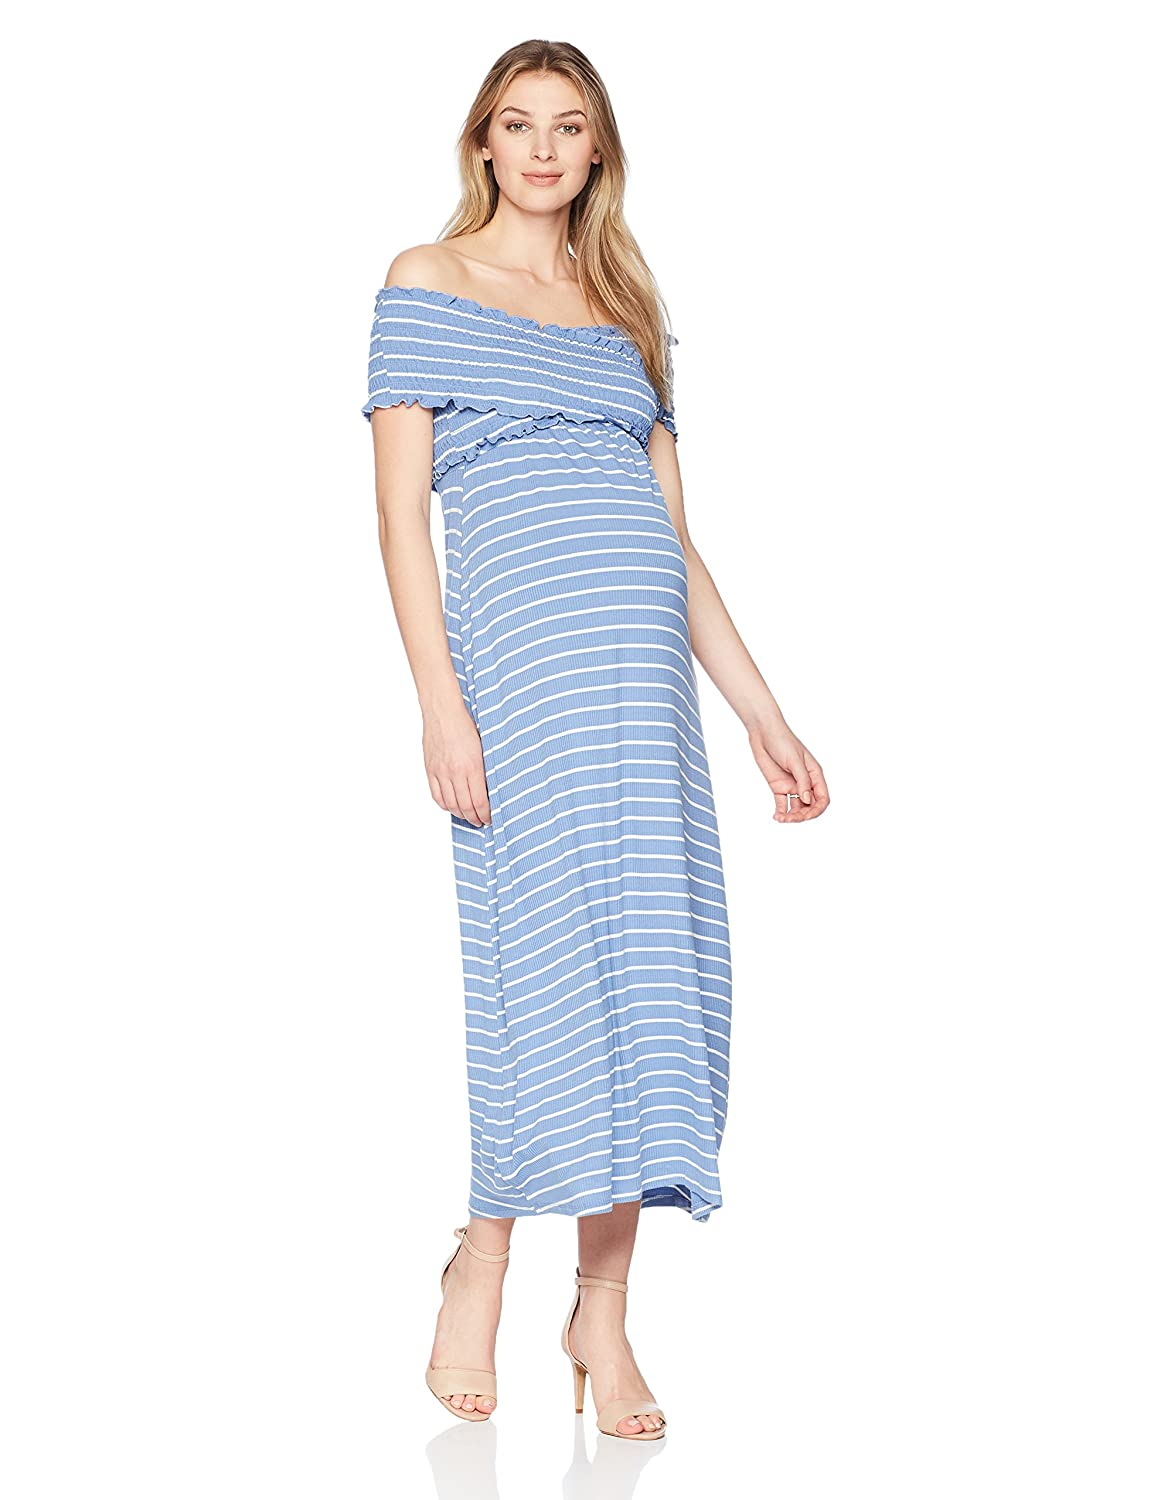 Maternal America DRESS レディース B078X2LMPV レディース Medium|Indigo Medium America Stripe Indigo Stripe Medium, あかりSHOP D-STYLE:794b7ce4 --- guayson.grupoies.com.mx